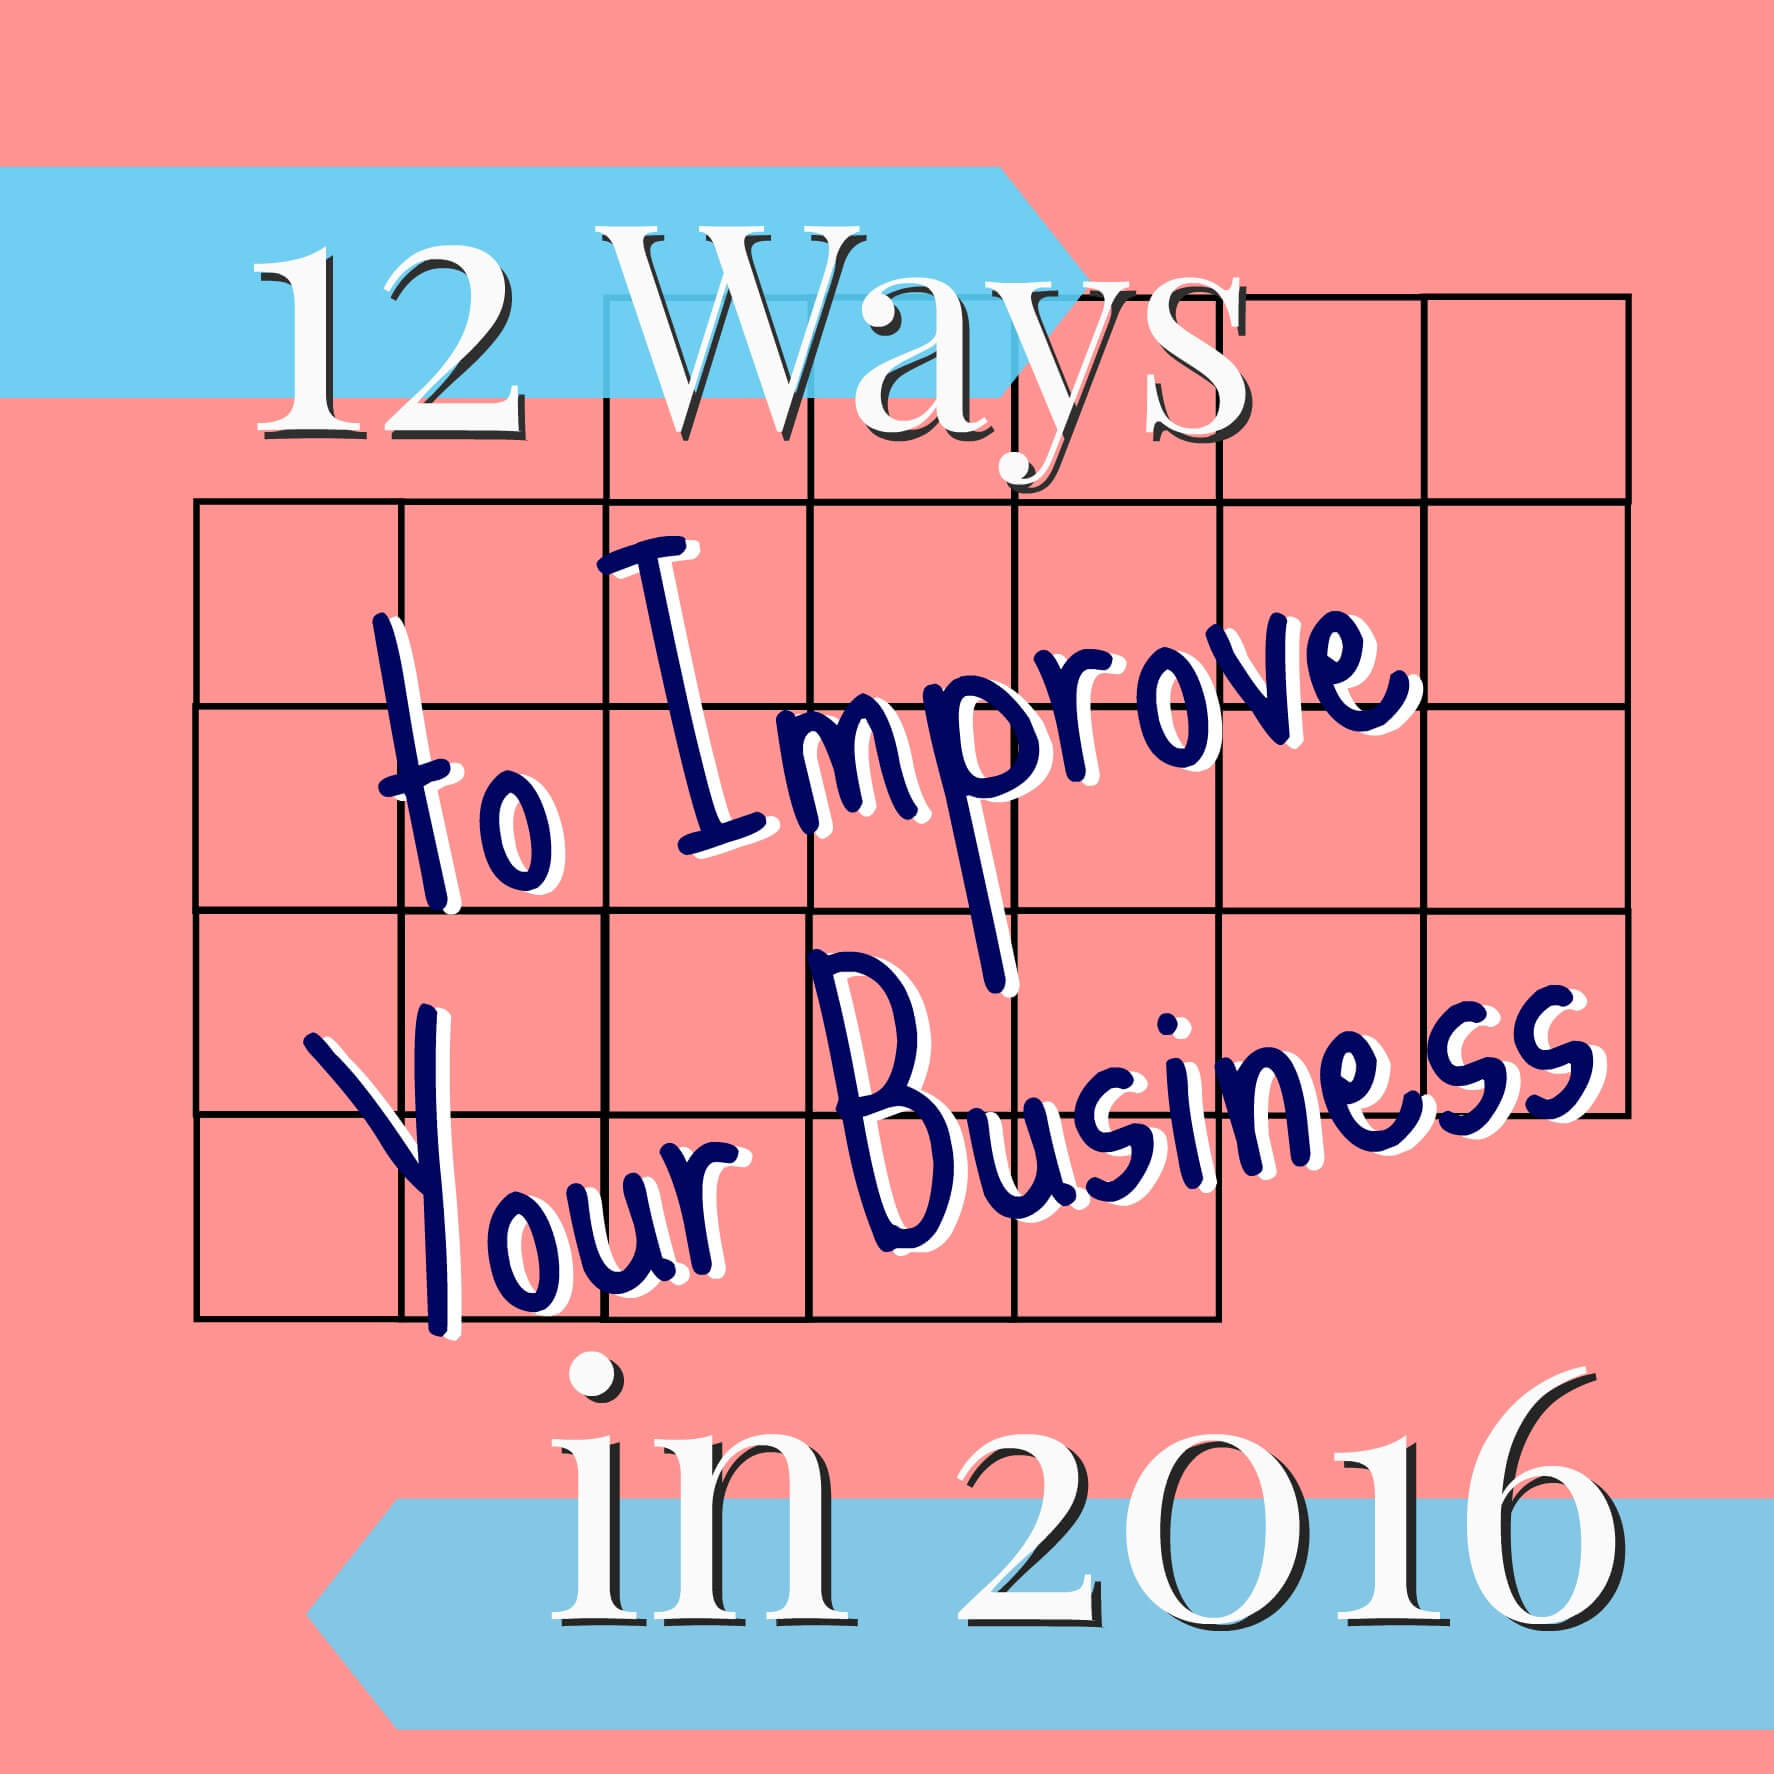 12 ways to improve your business in 2016